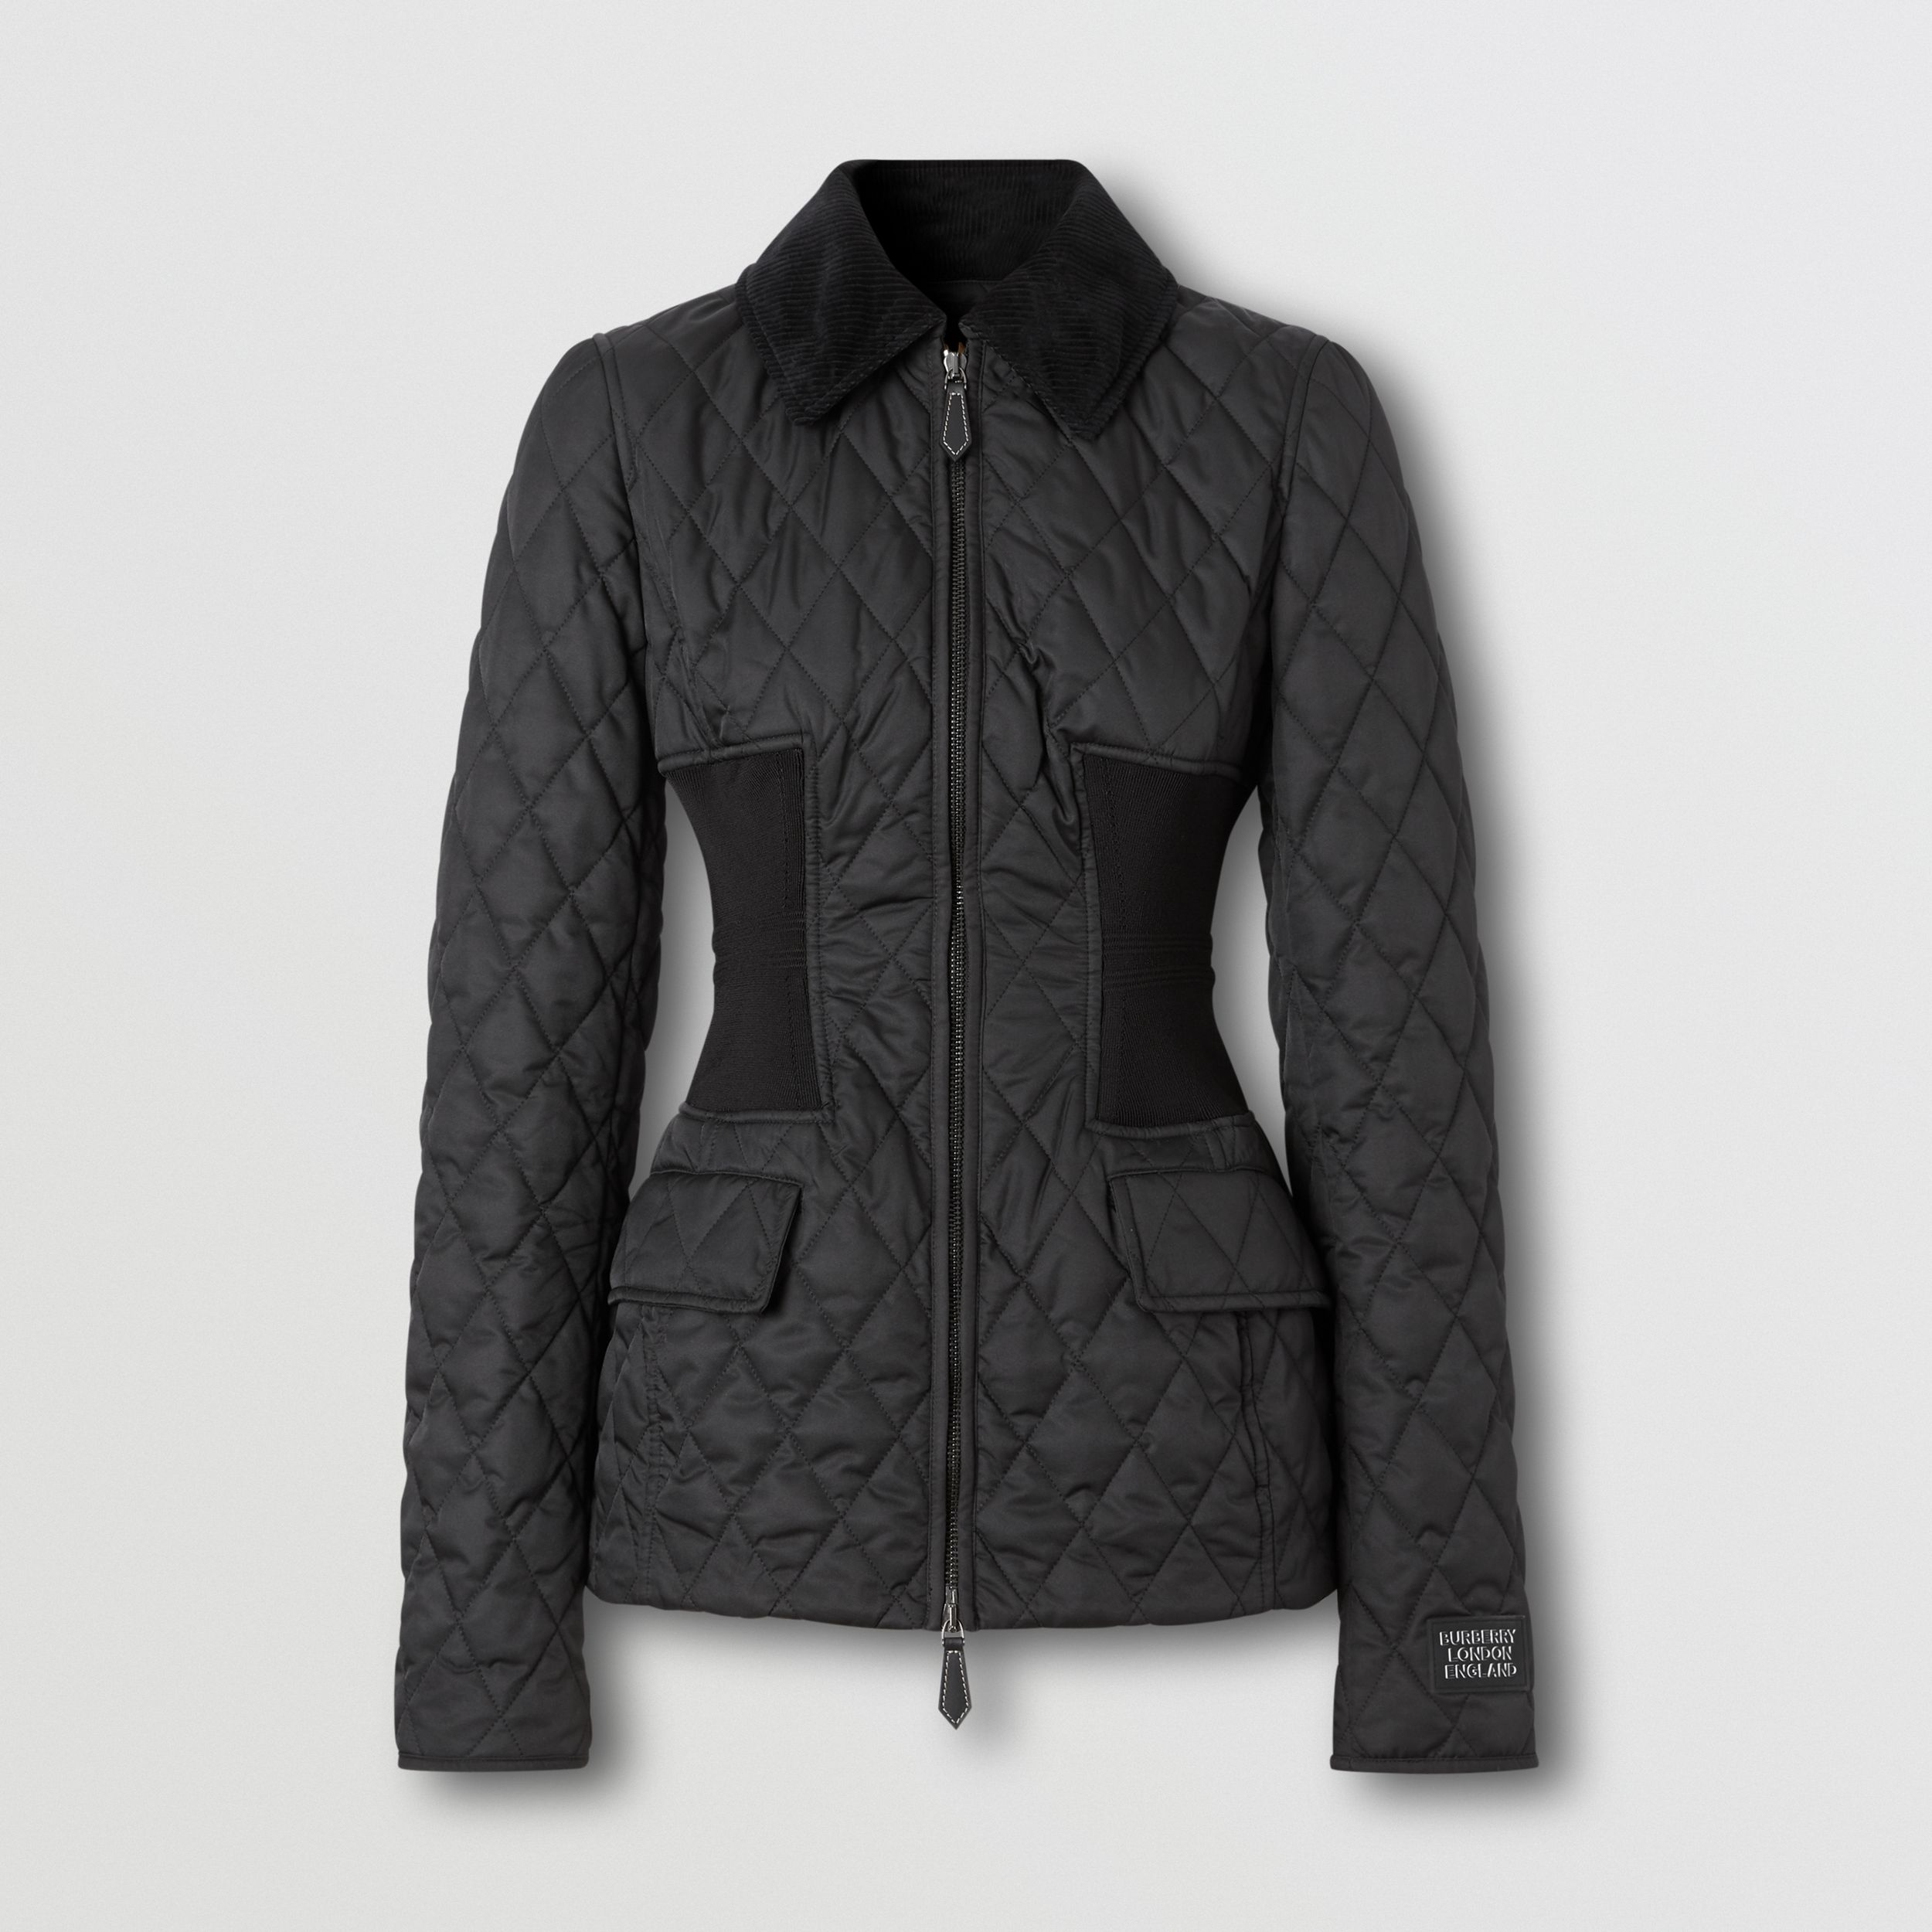 Rib Knit Panel Diamond Quilted Barn Jacket in Black - Women | Burberry Canada - 4